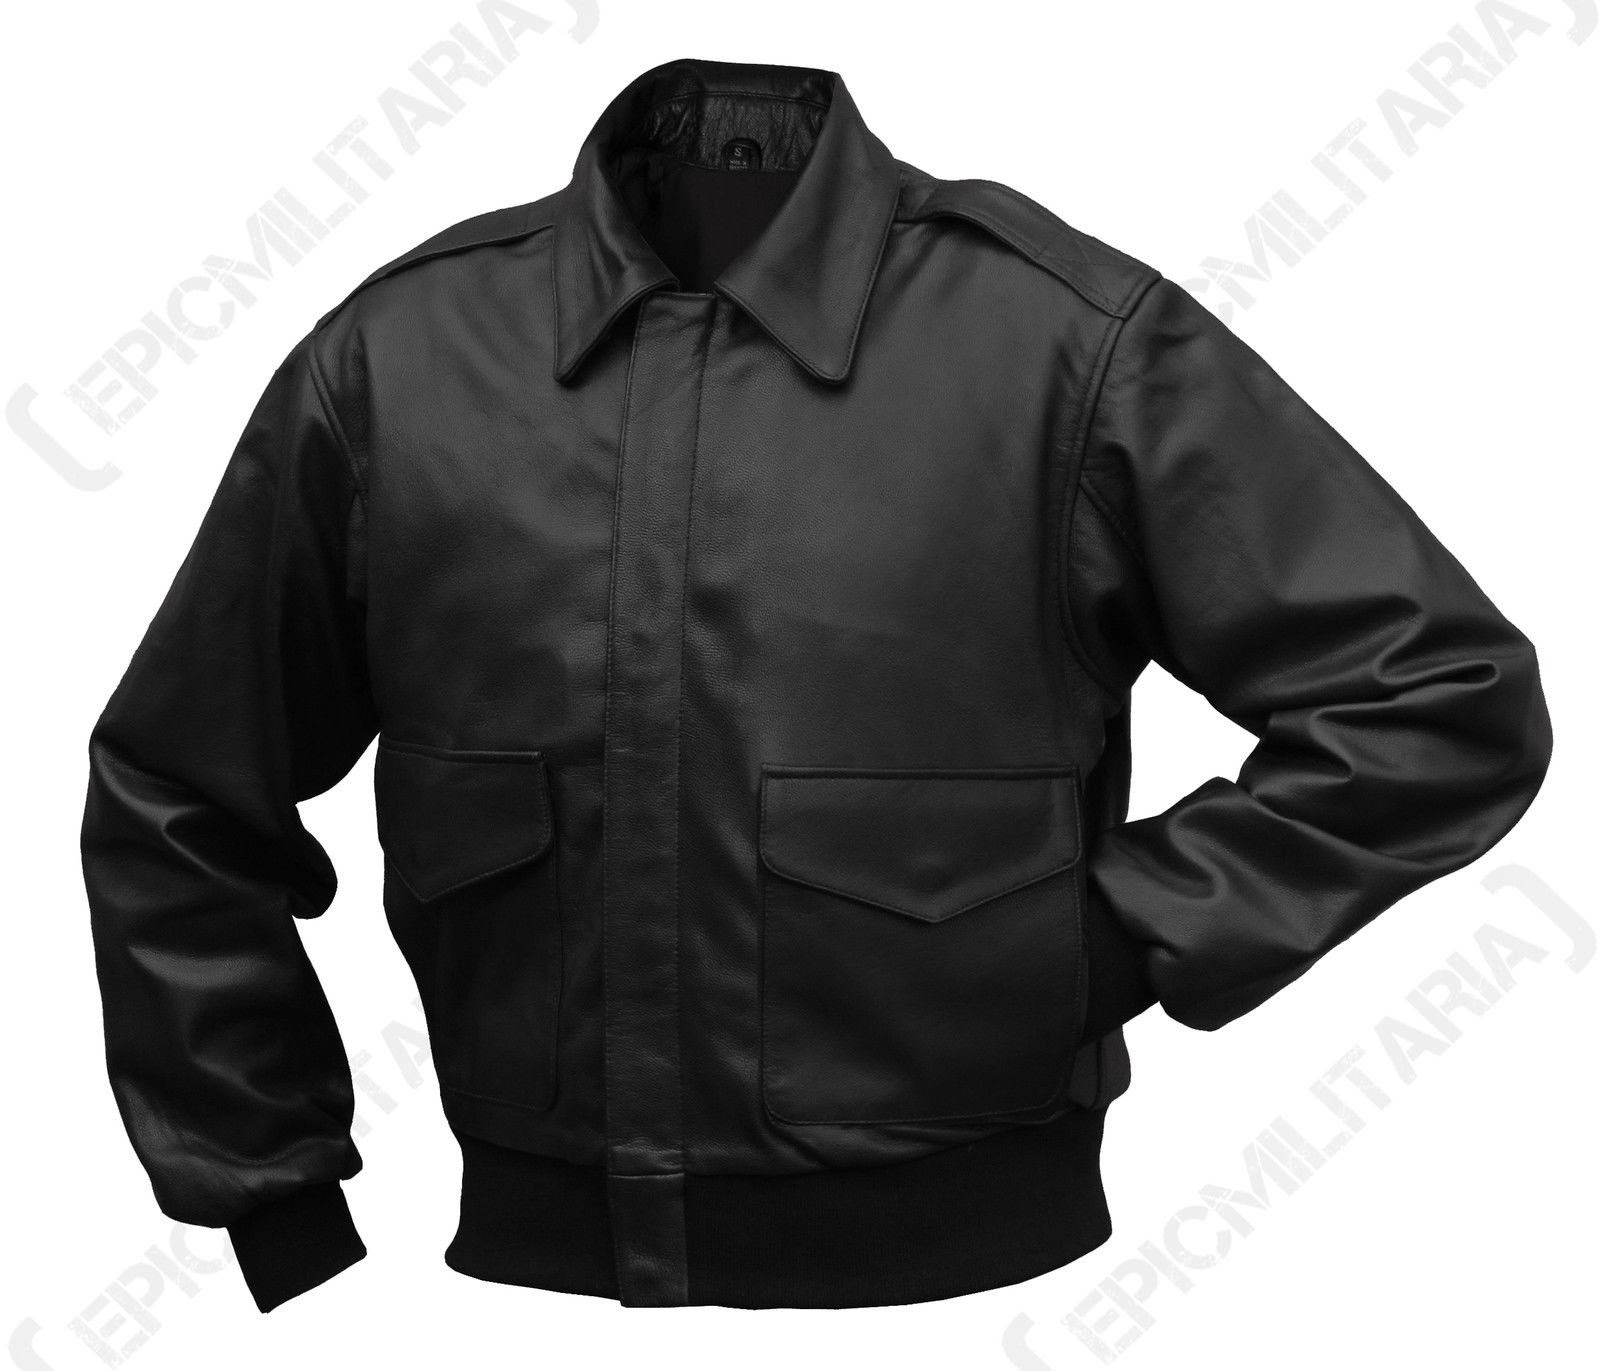 BLACK Leather US Pilots A2 Flying Jacket - Repro All Sizes WW2 American Airforce